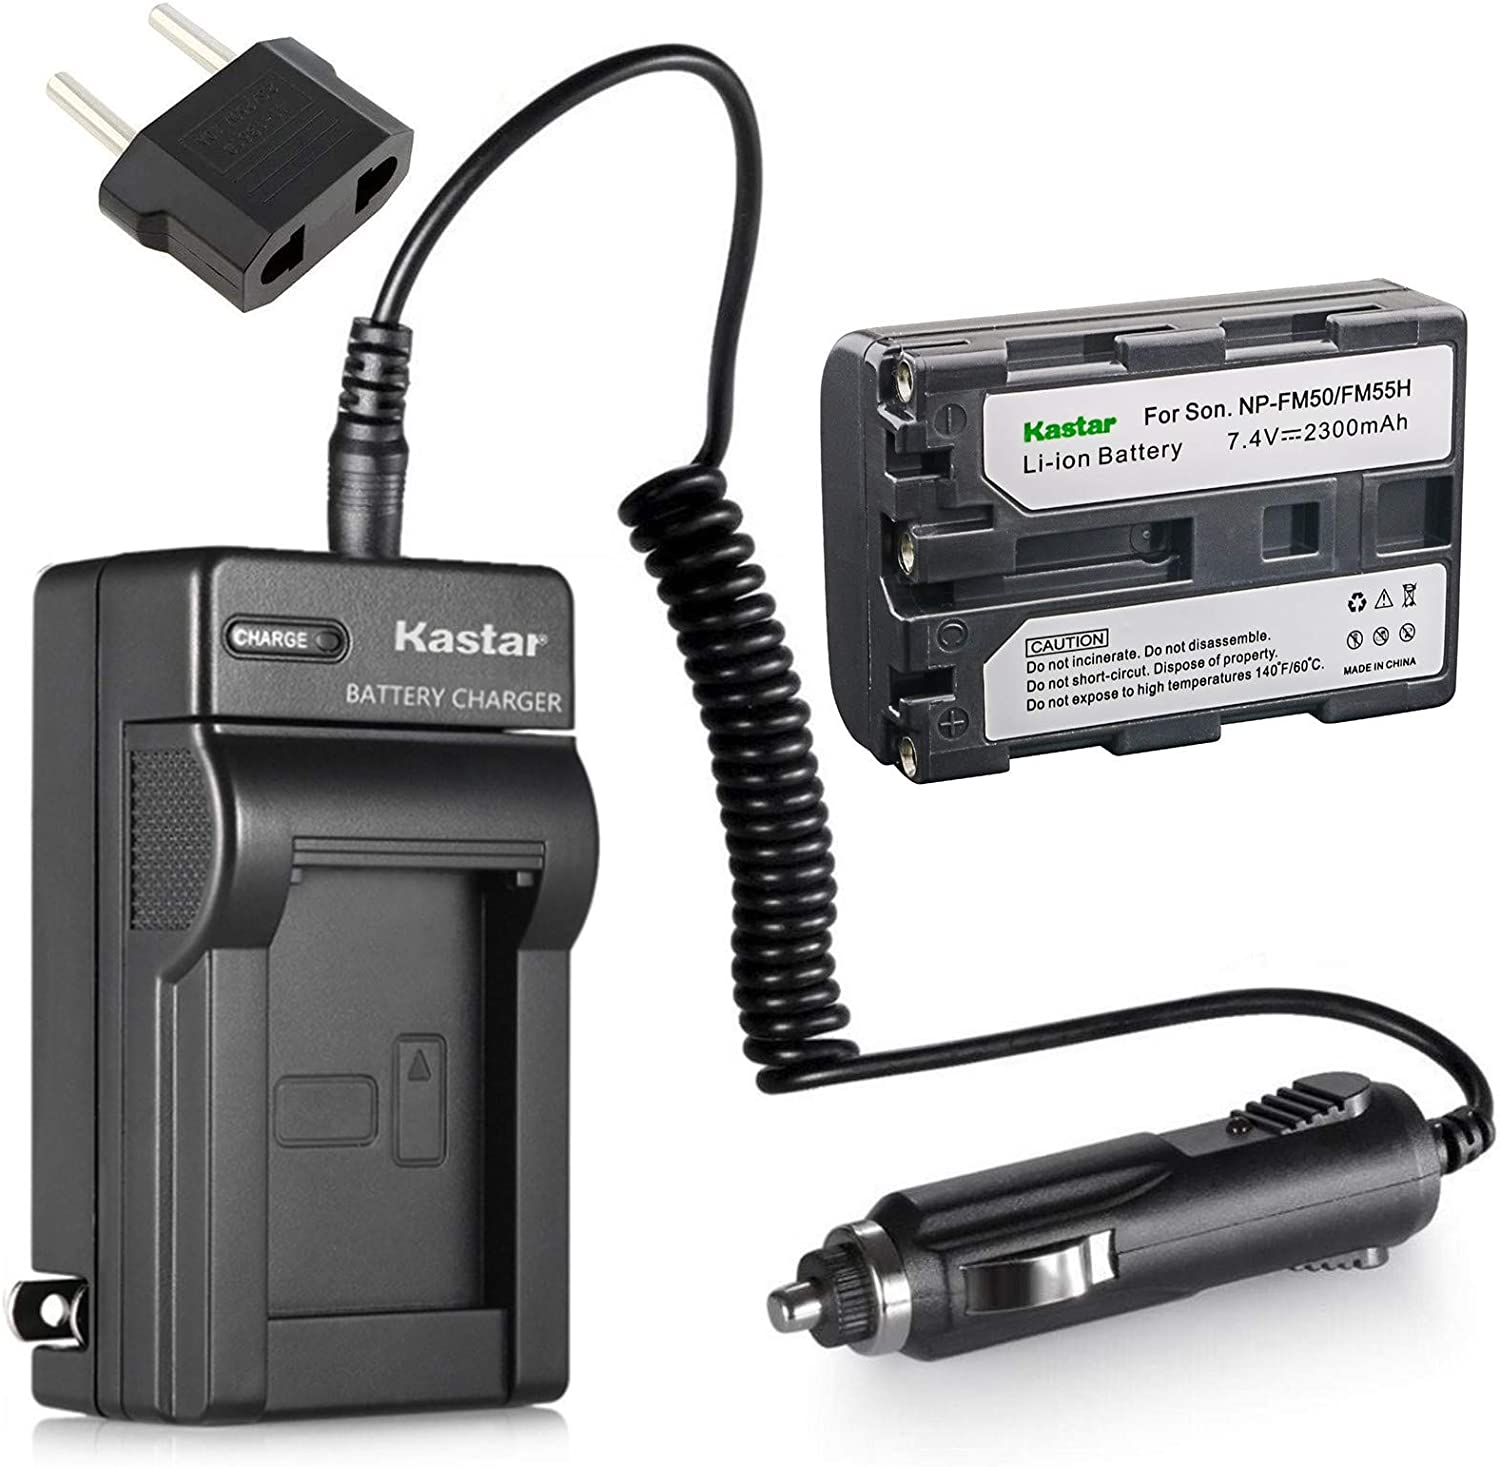 USB Battery Charger NP-FM50 For Sony DCR-DVD200 DSC-F828 CCD-TRV408 Camcorder